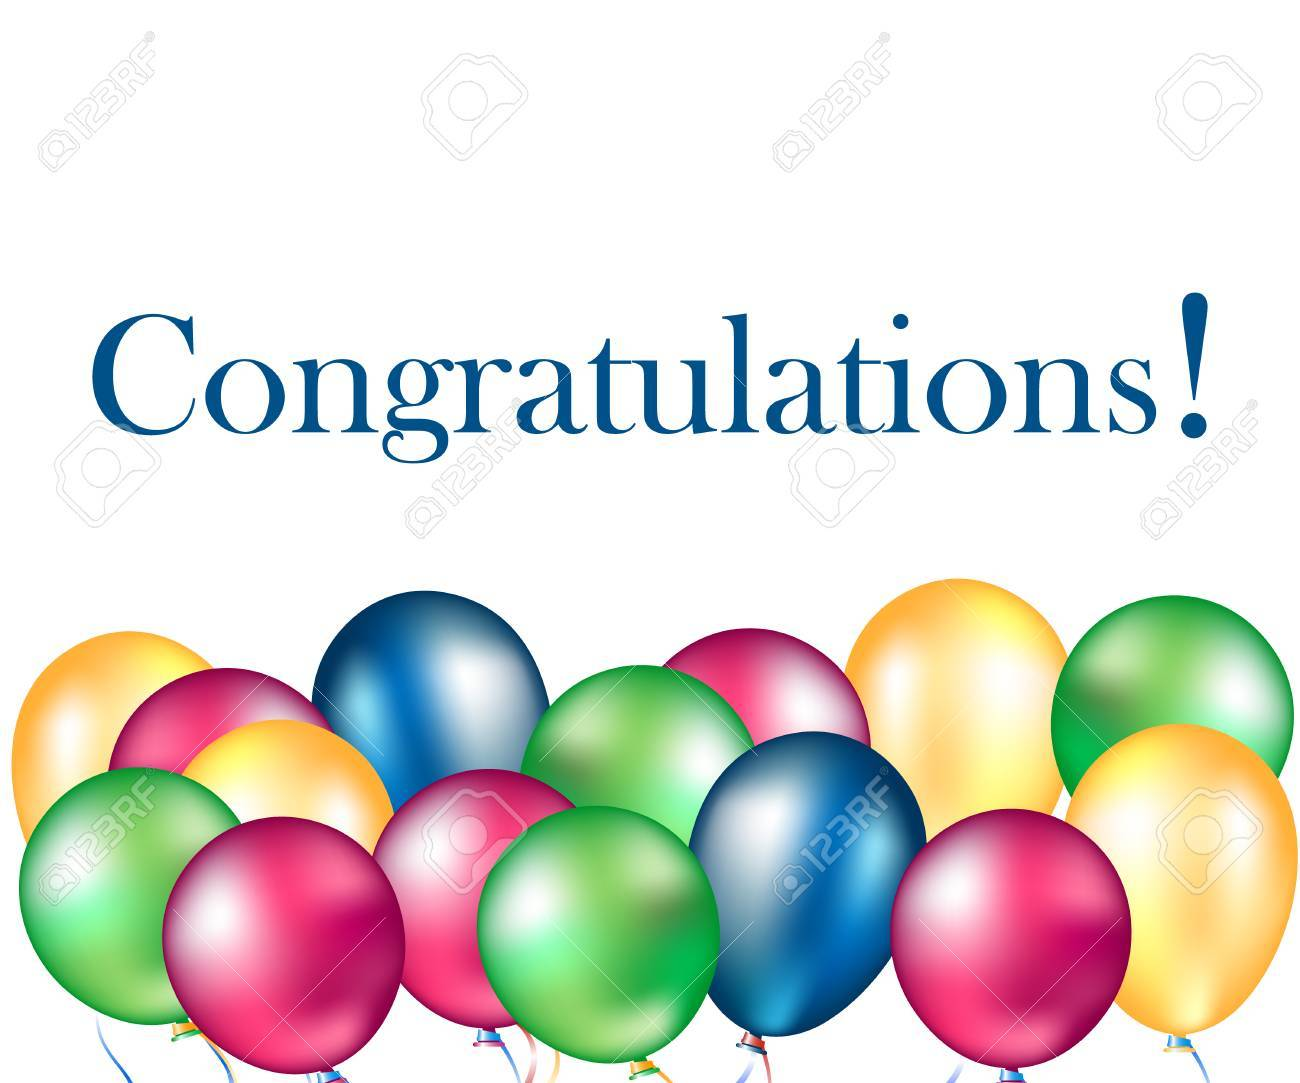 Different colorful balloons with text congratulations - 84948282